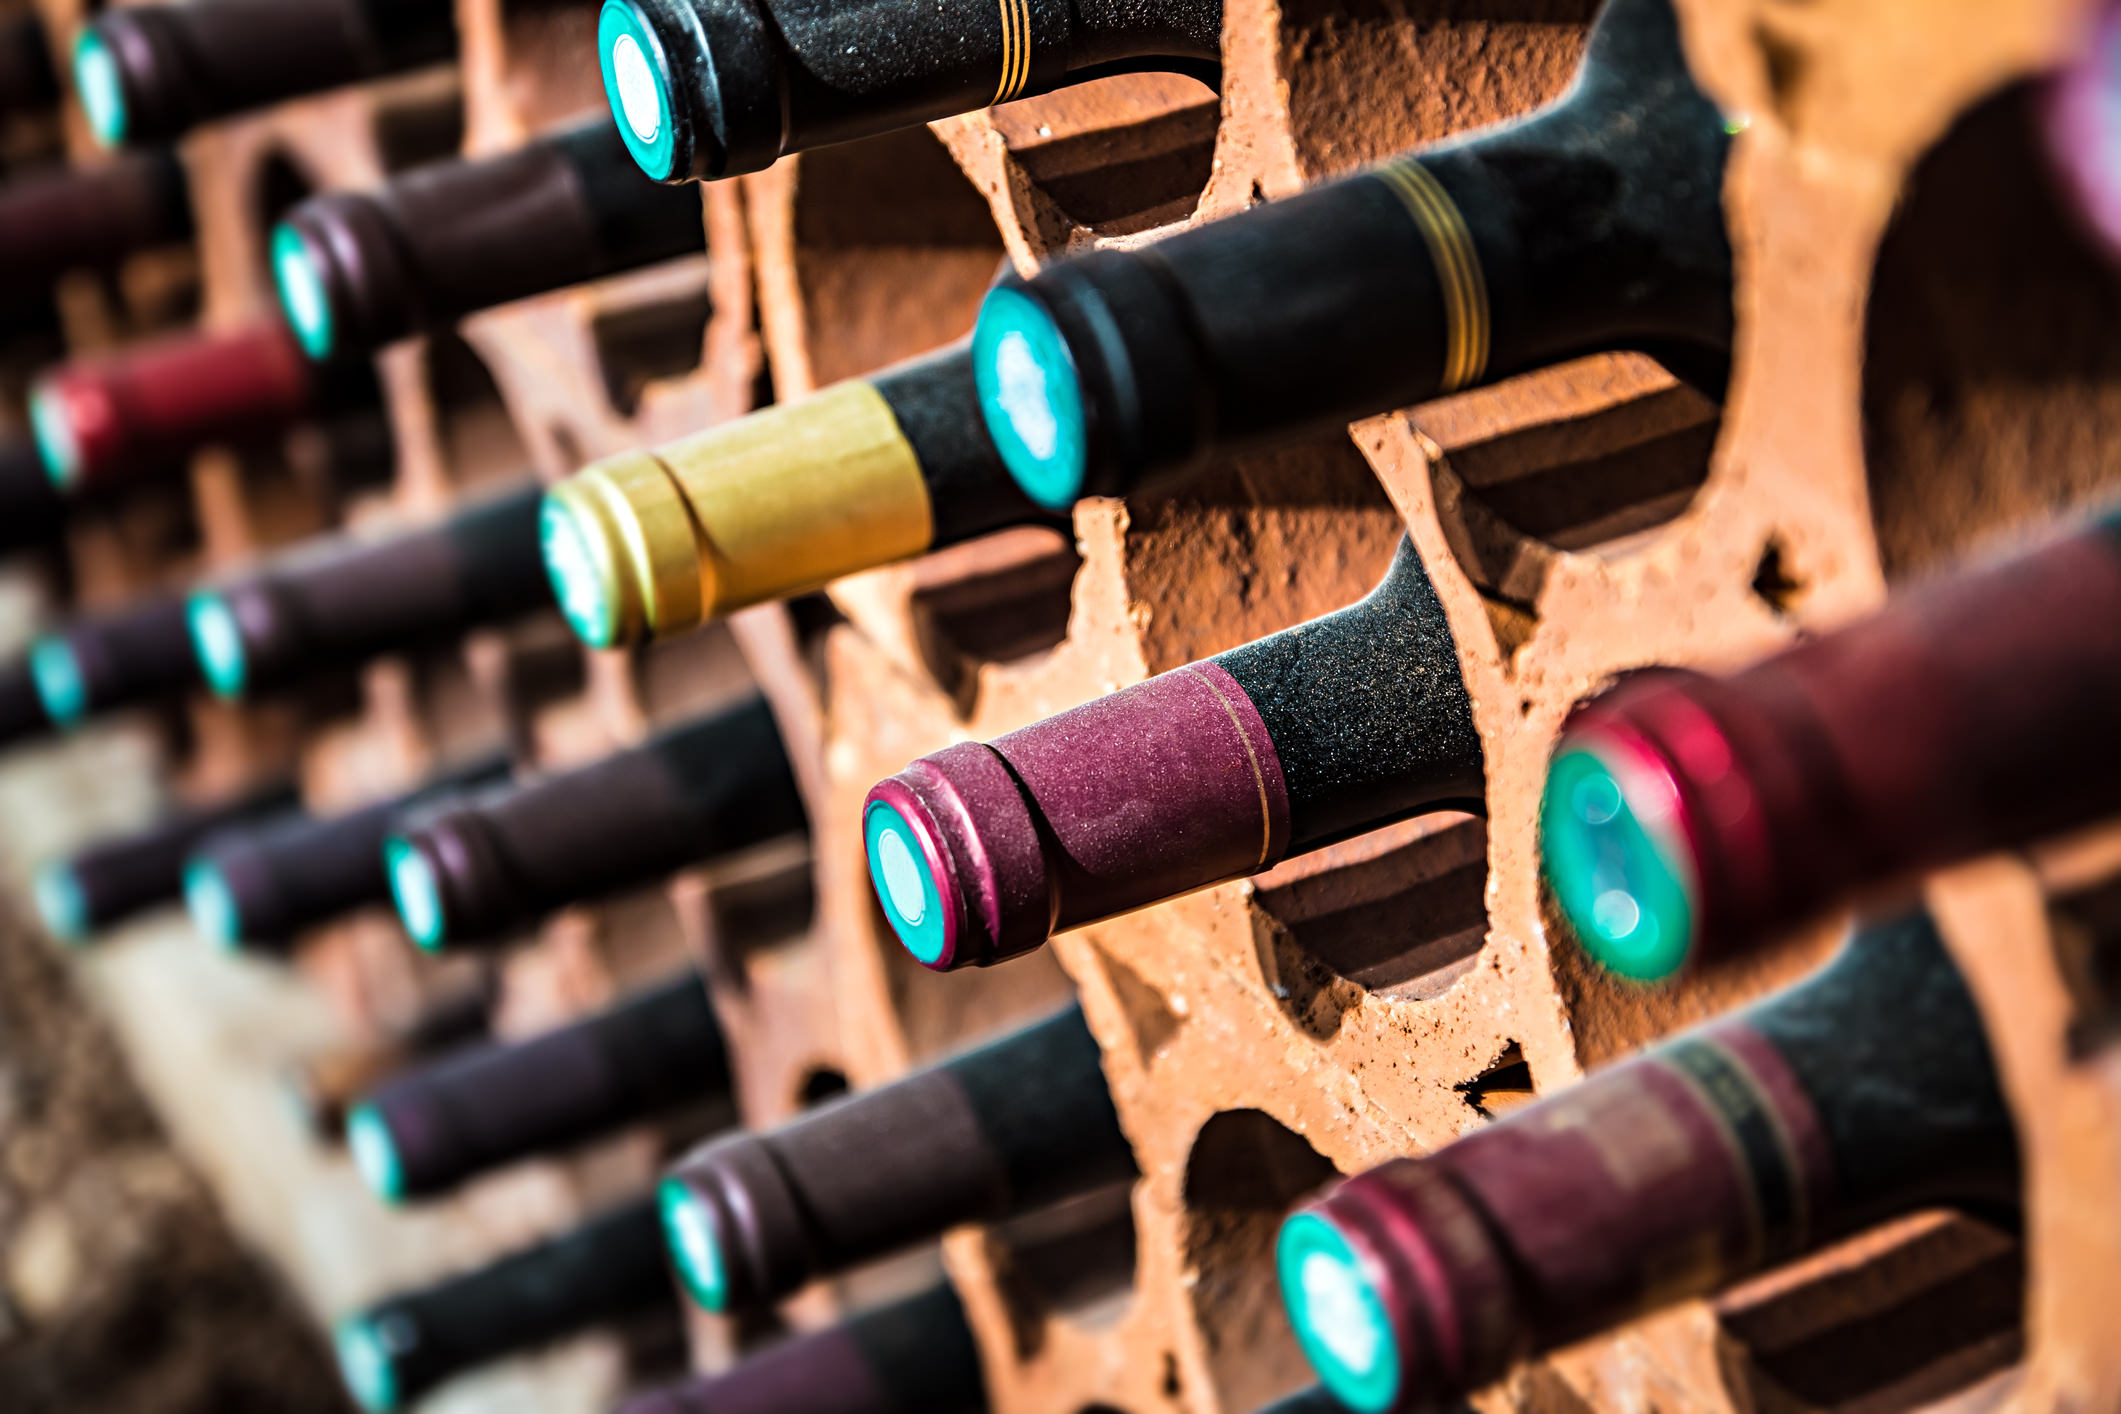 Close up view of a wine rack full of bottles.